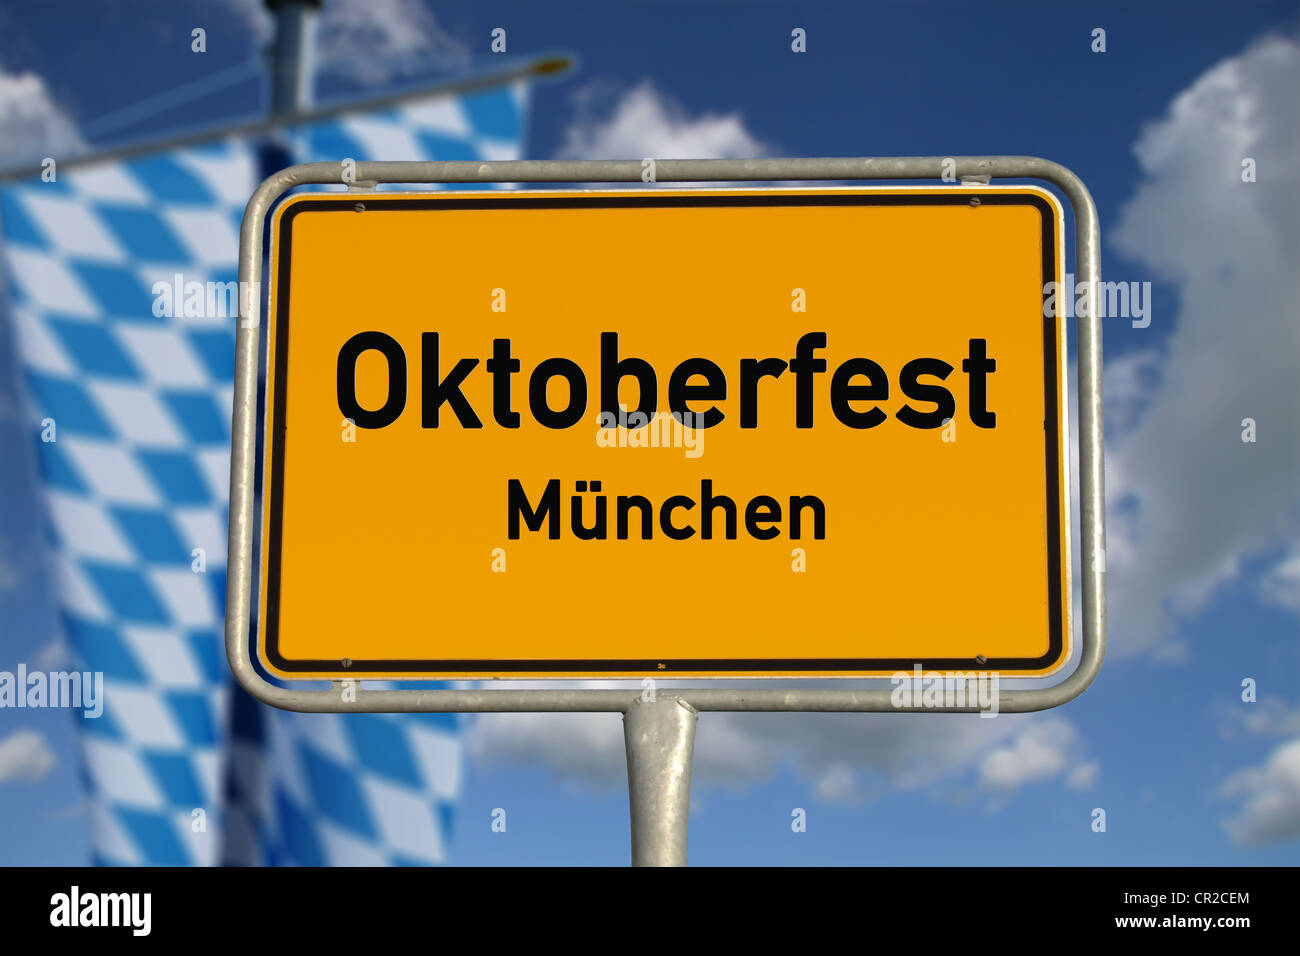 German road sign Oktoberfest Munich, Bavaria with blue sky and white clouds - Stock Image